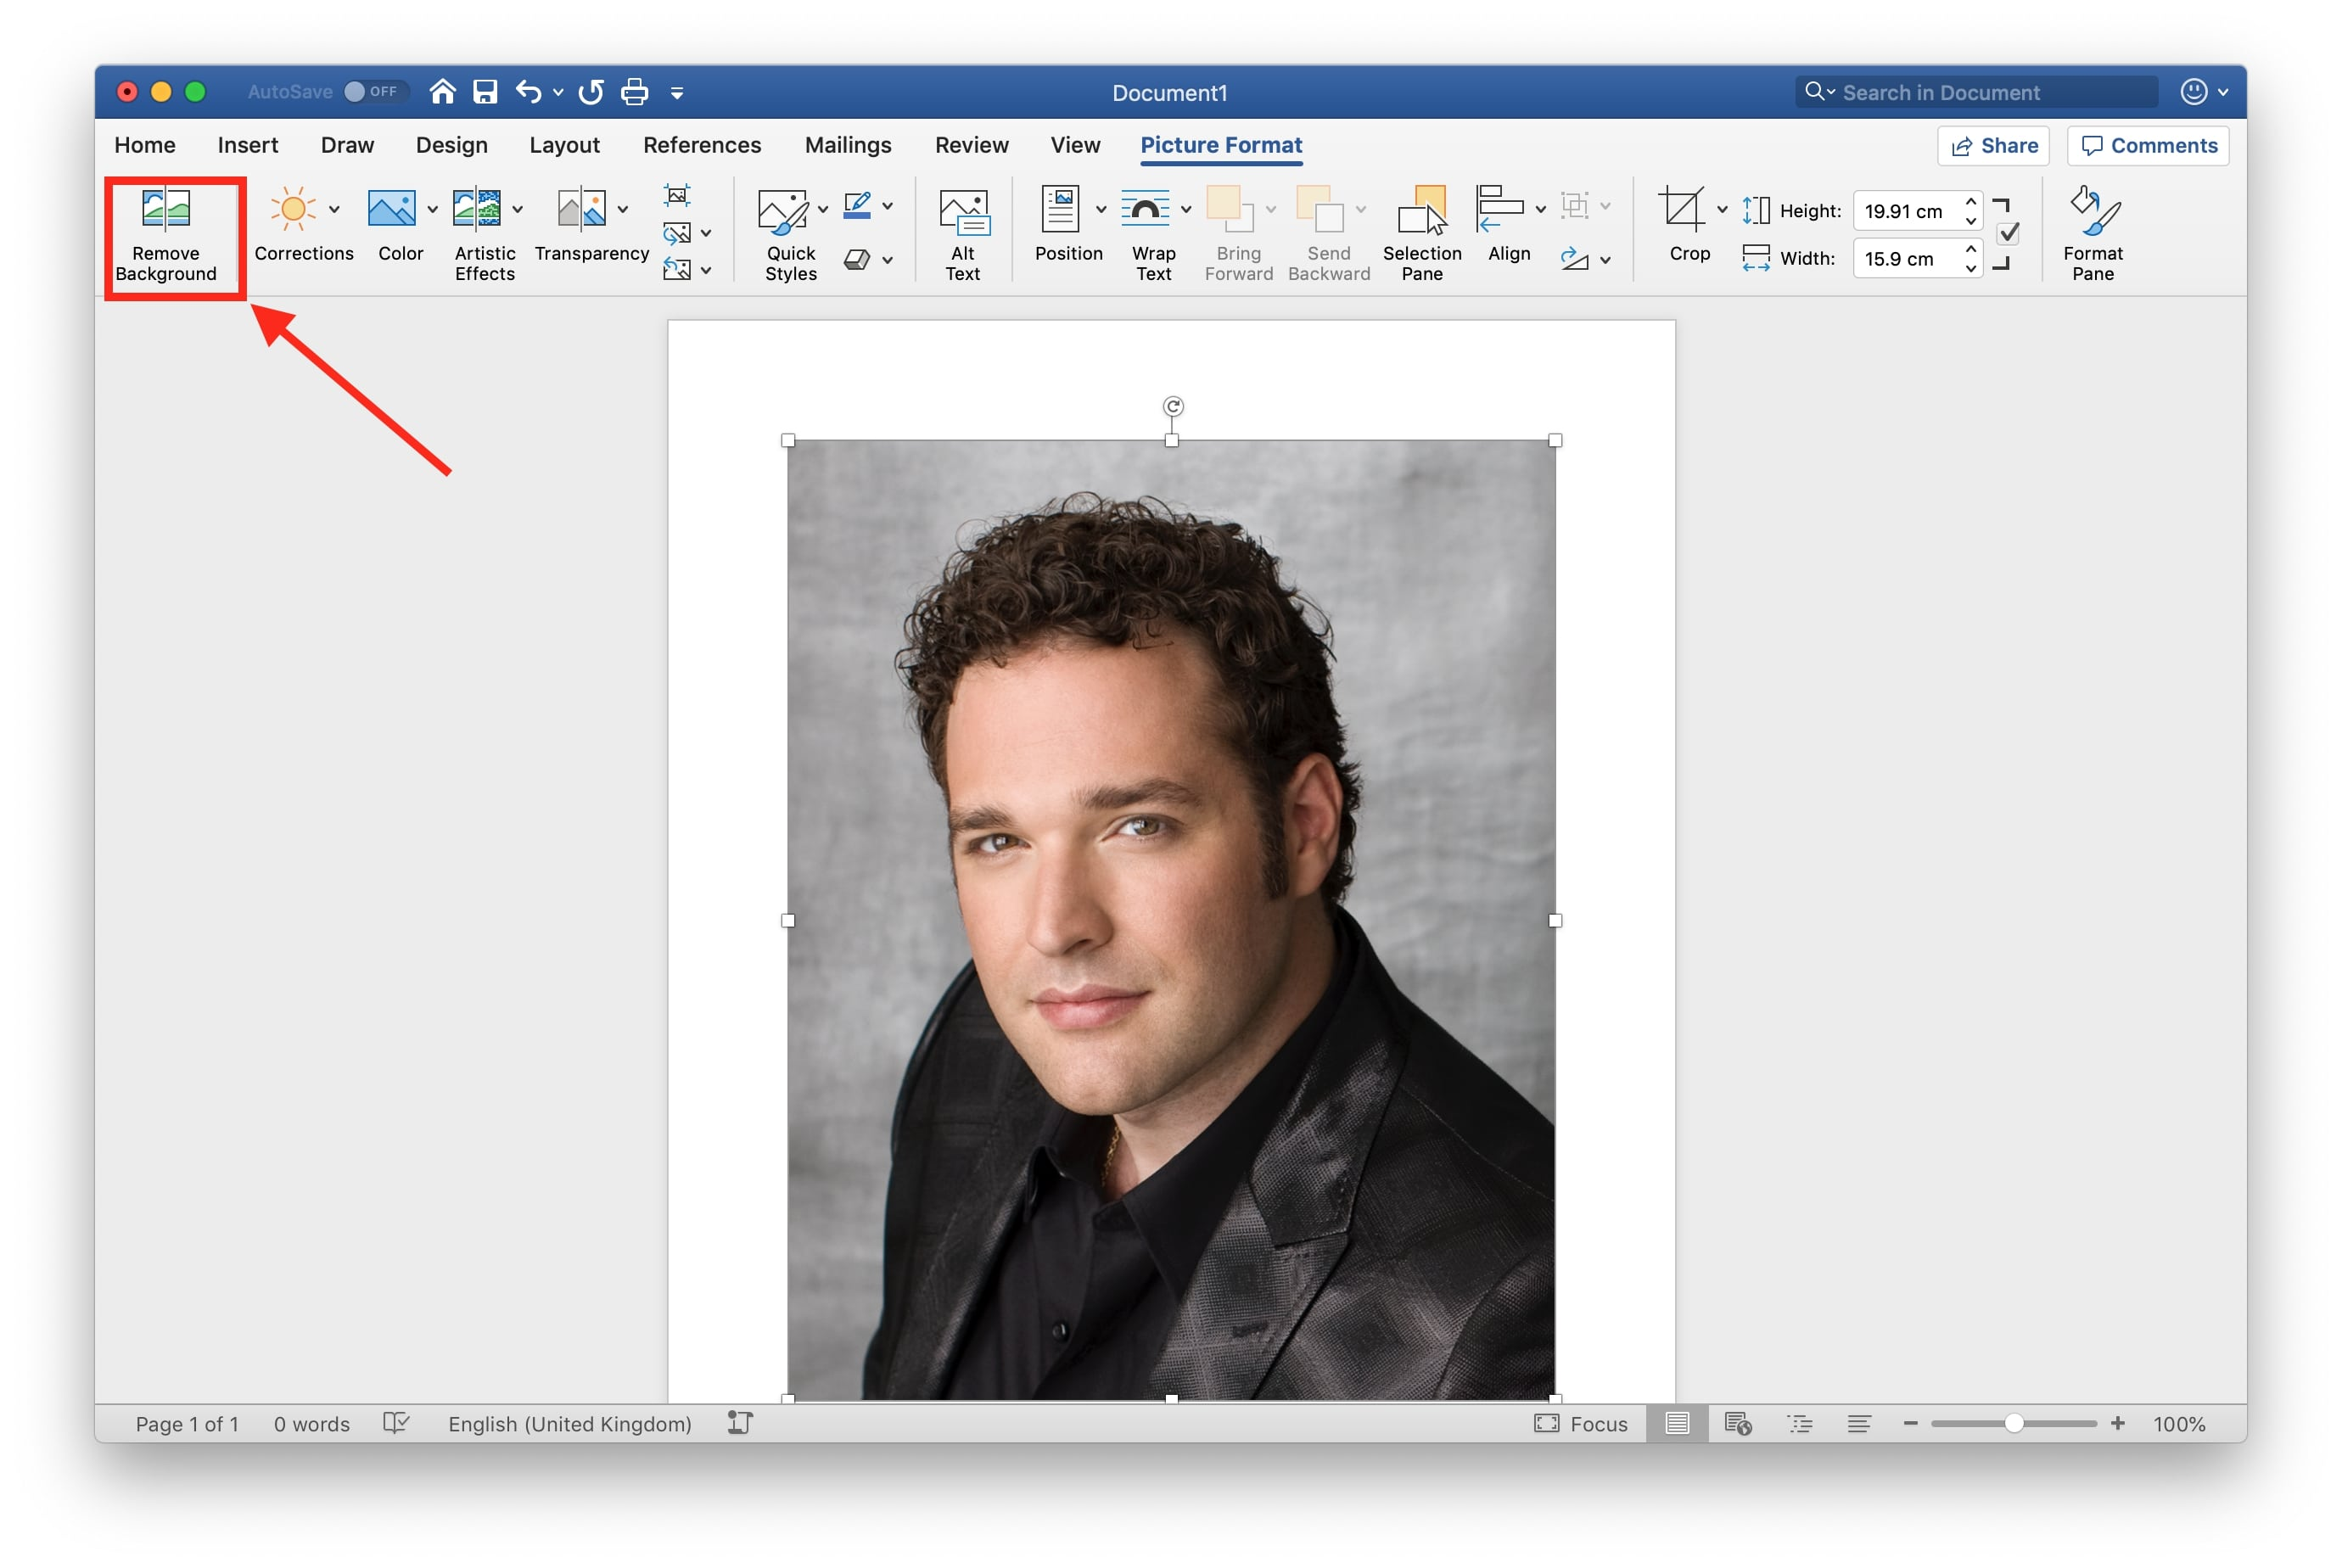 3 - How to remove background in Photoshop